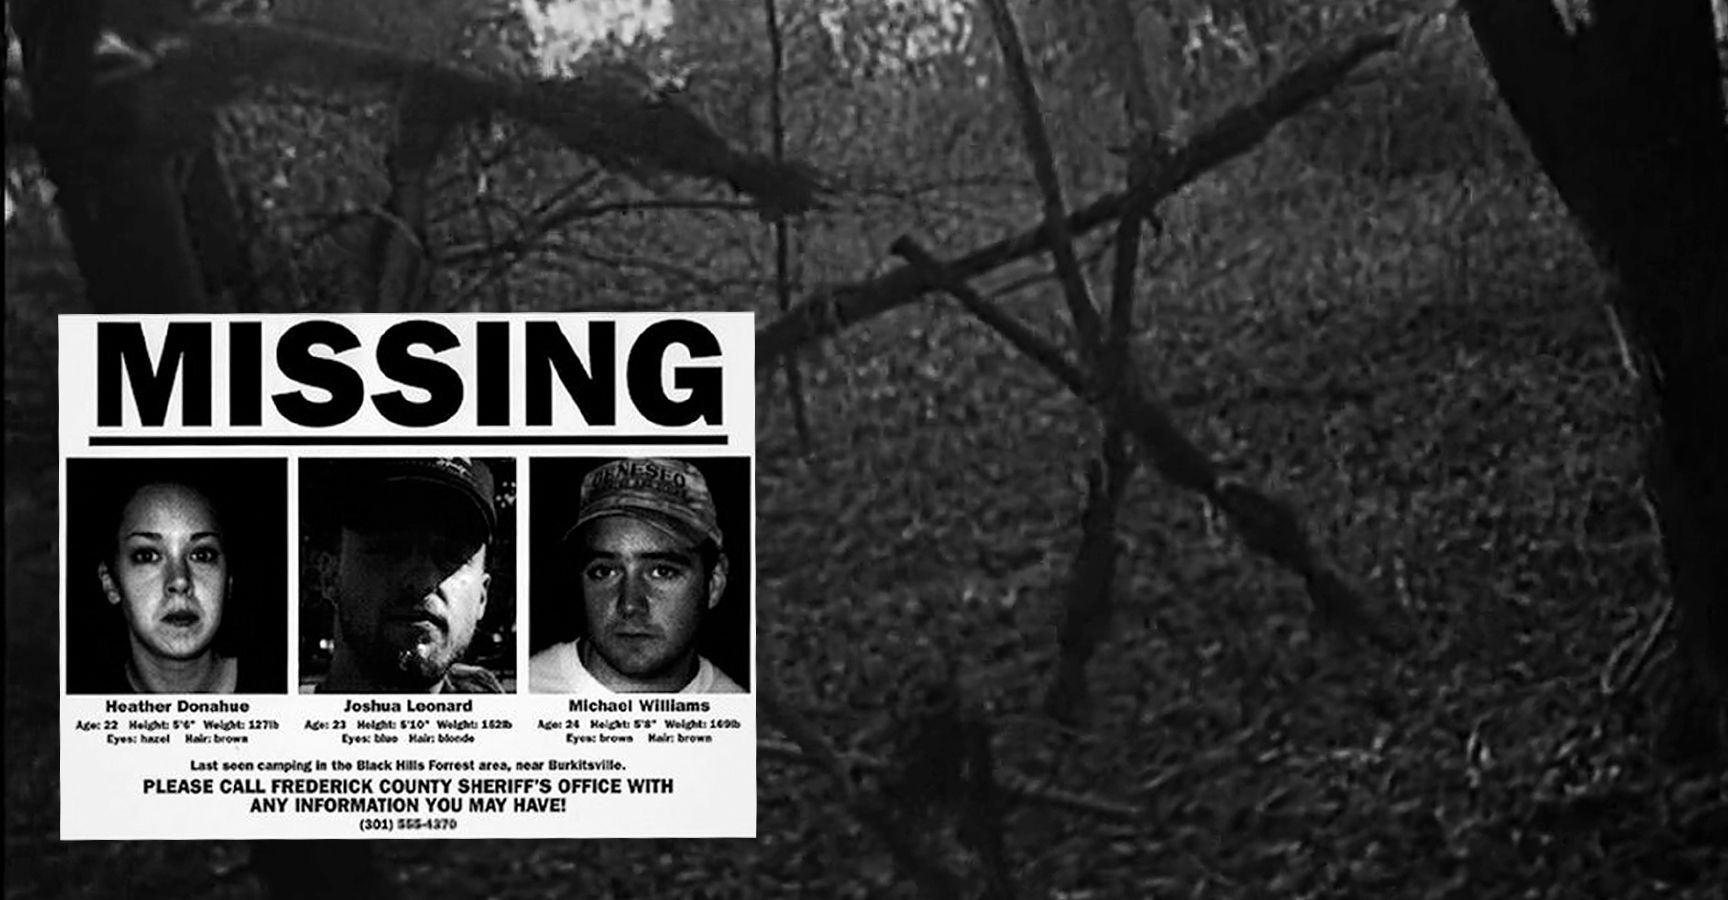 15 Terrifying 'Blair Witch' Stories That Will Make You Sleep With The Light On